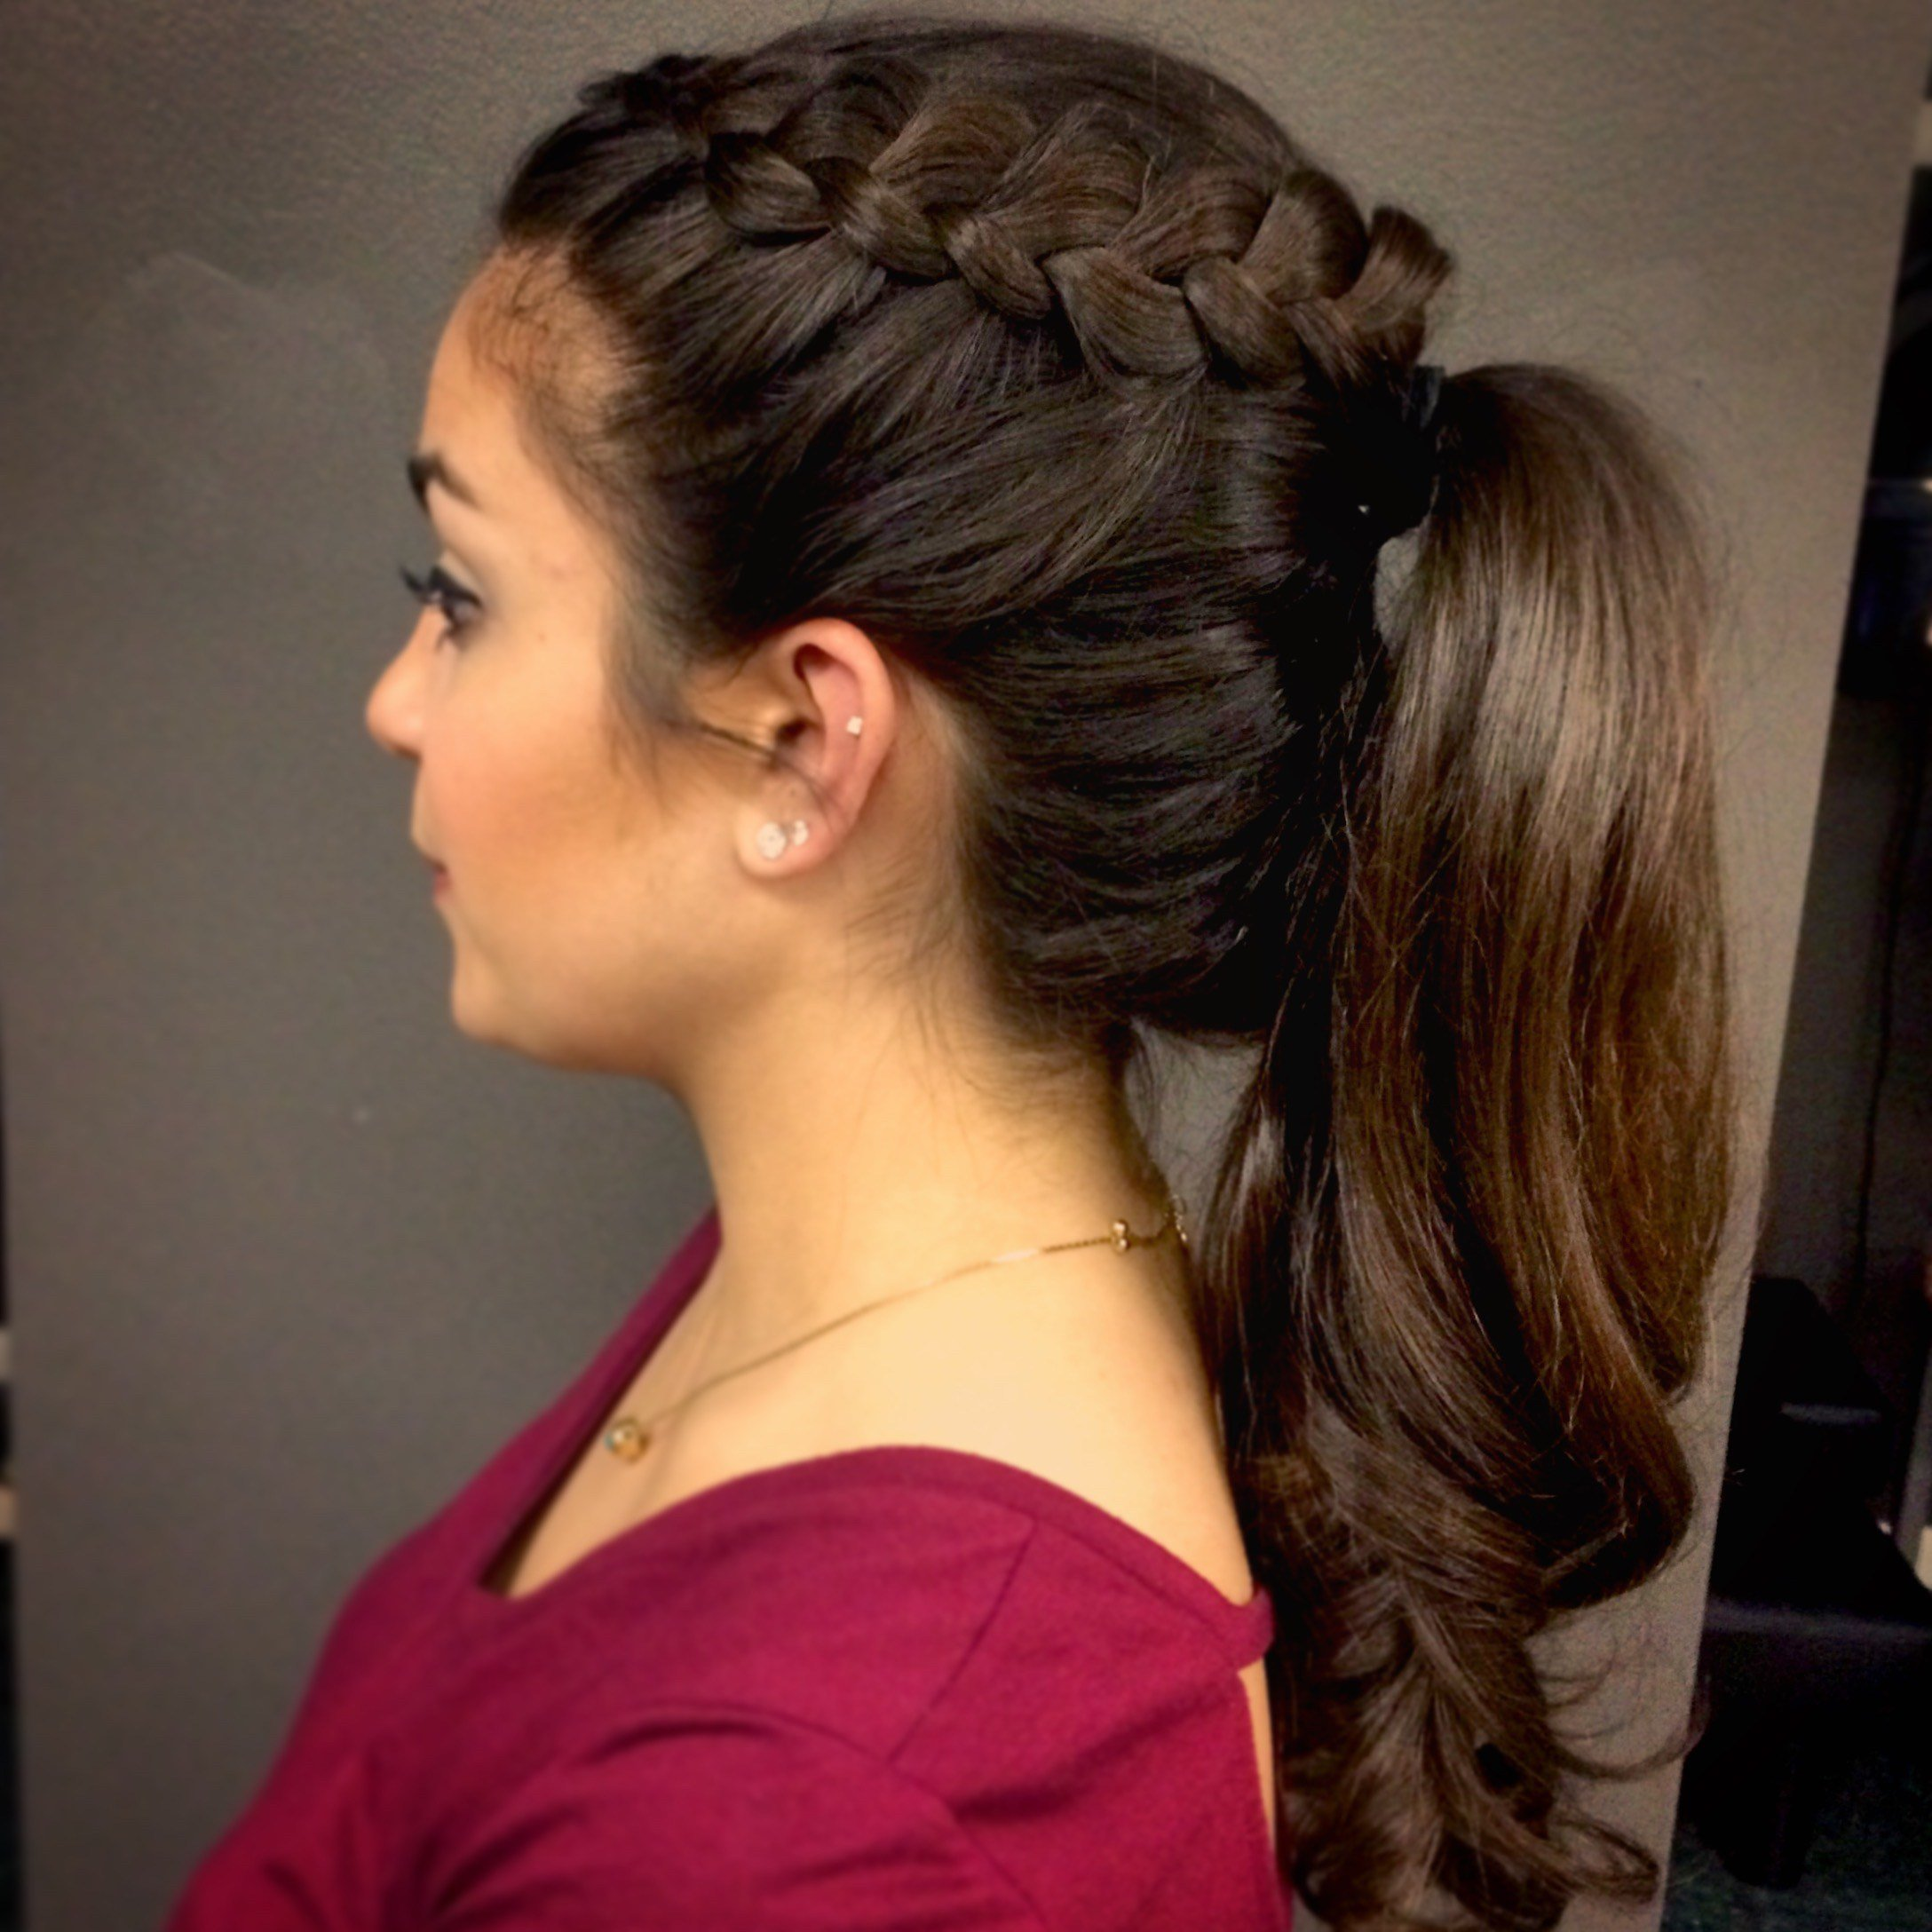 The Best Lexie Hair And Make Up Artist Make You Feel Beautiful Pictures